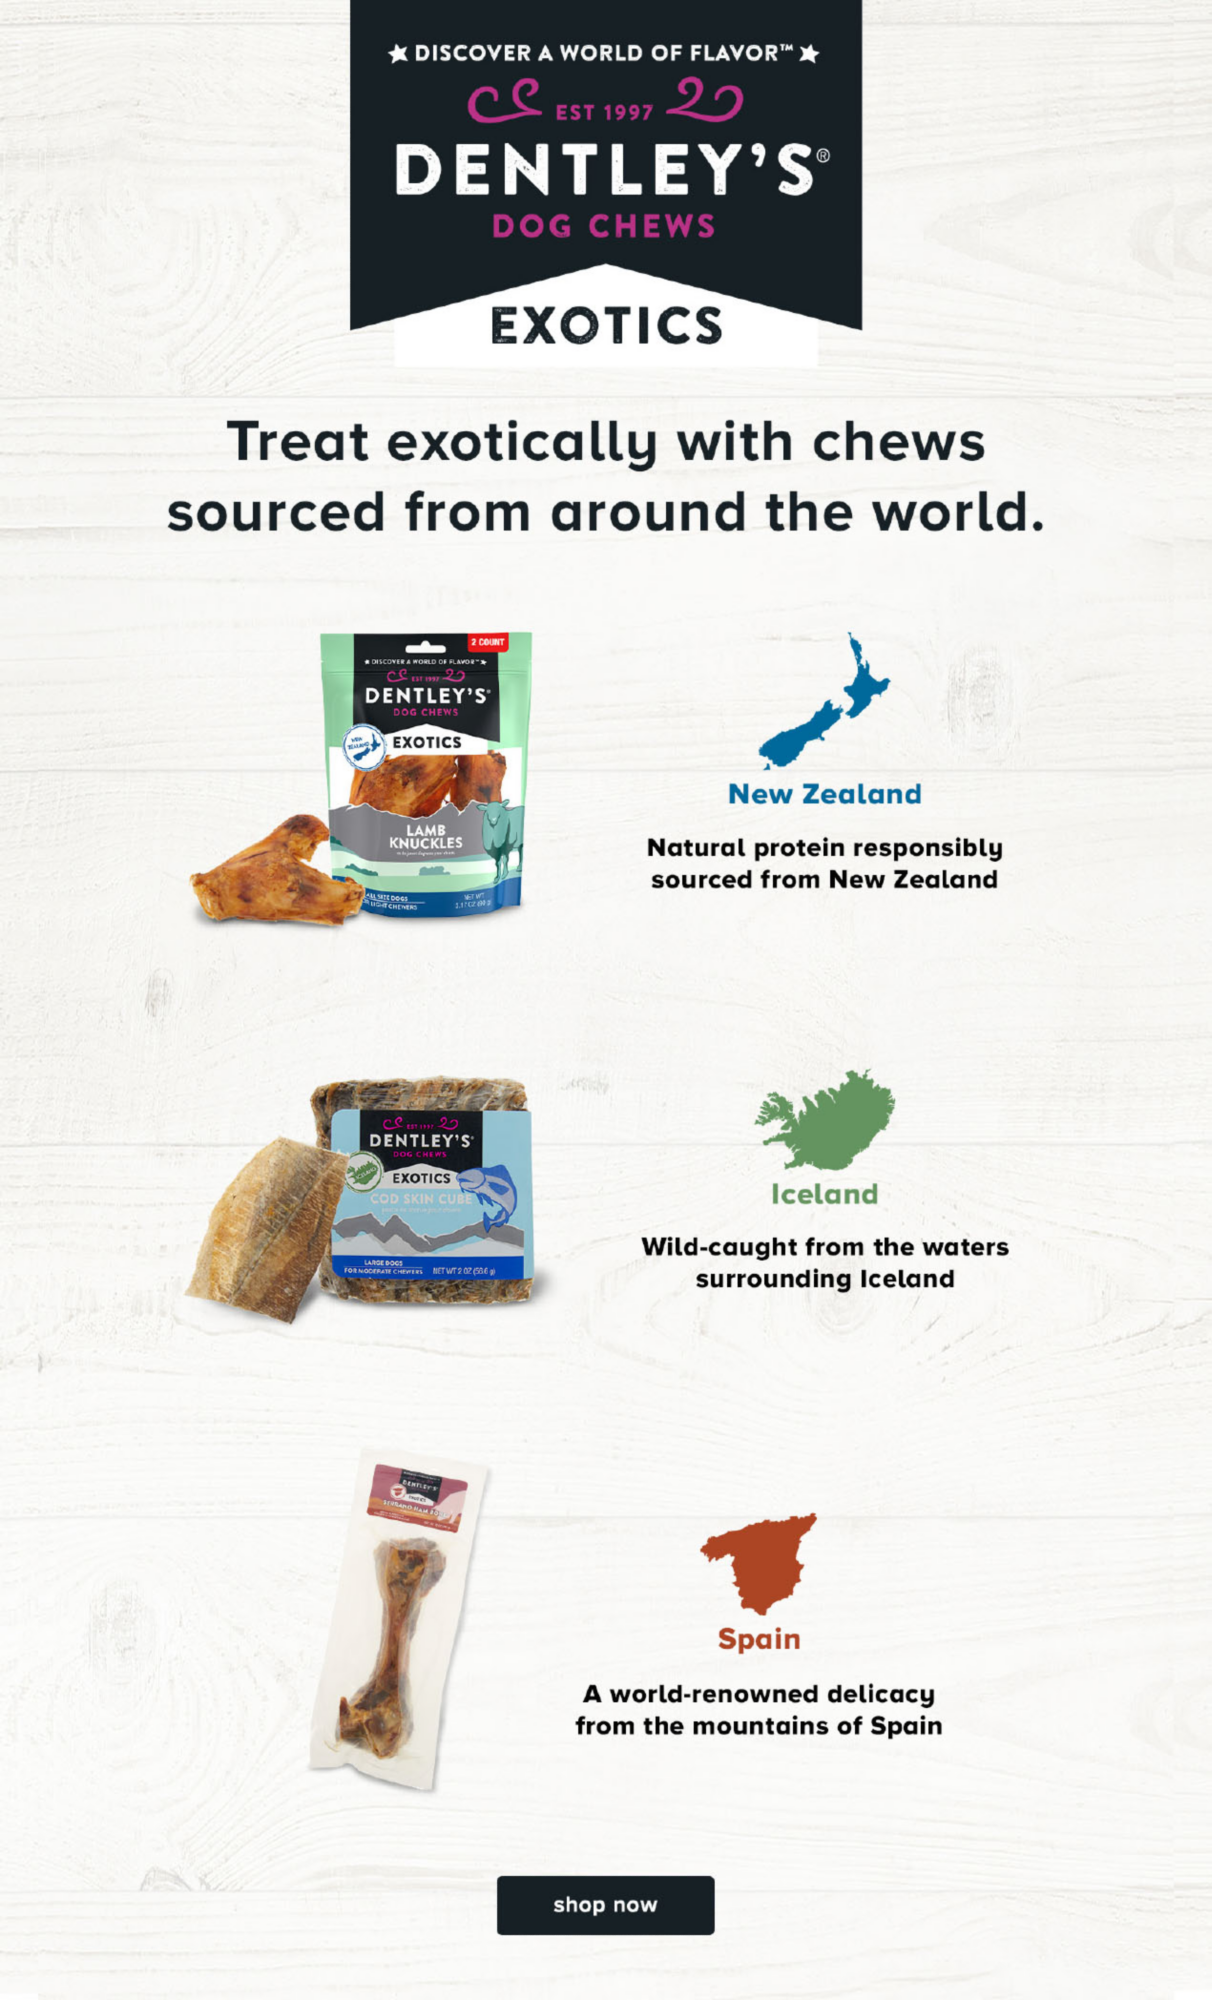 DISCOVER A WORLD OF FLAVOR                         EST 1997                         DENTLEY'S®                         DOG CHEWS EXOTICS                         Treat exotically with chews sourced from around the world.                                                   New Zealand                          Natural protein responsibly sourced from New Zealand                         Iceland                         Wild-caught from the waters surrounding Iceland                         Spain                         A world-renowned delicacy from the mountains of Spain                                                  shop now